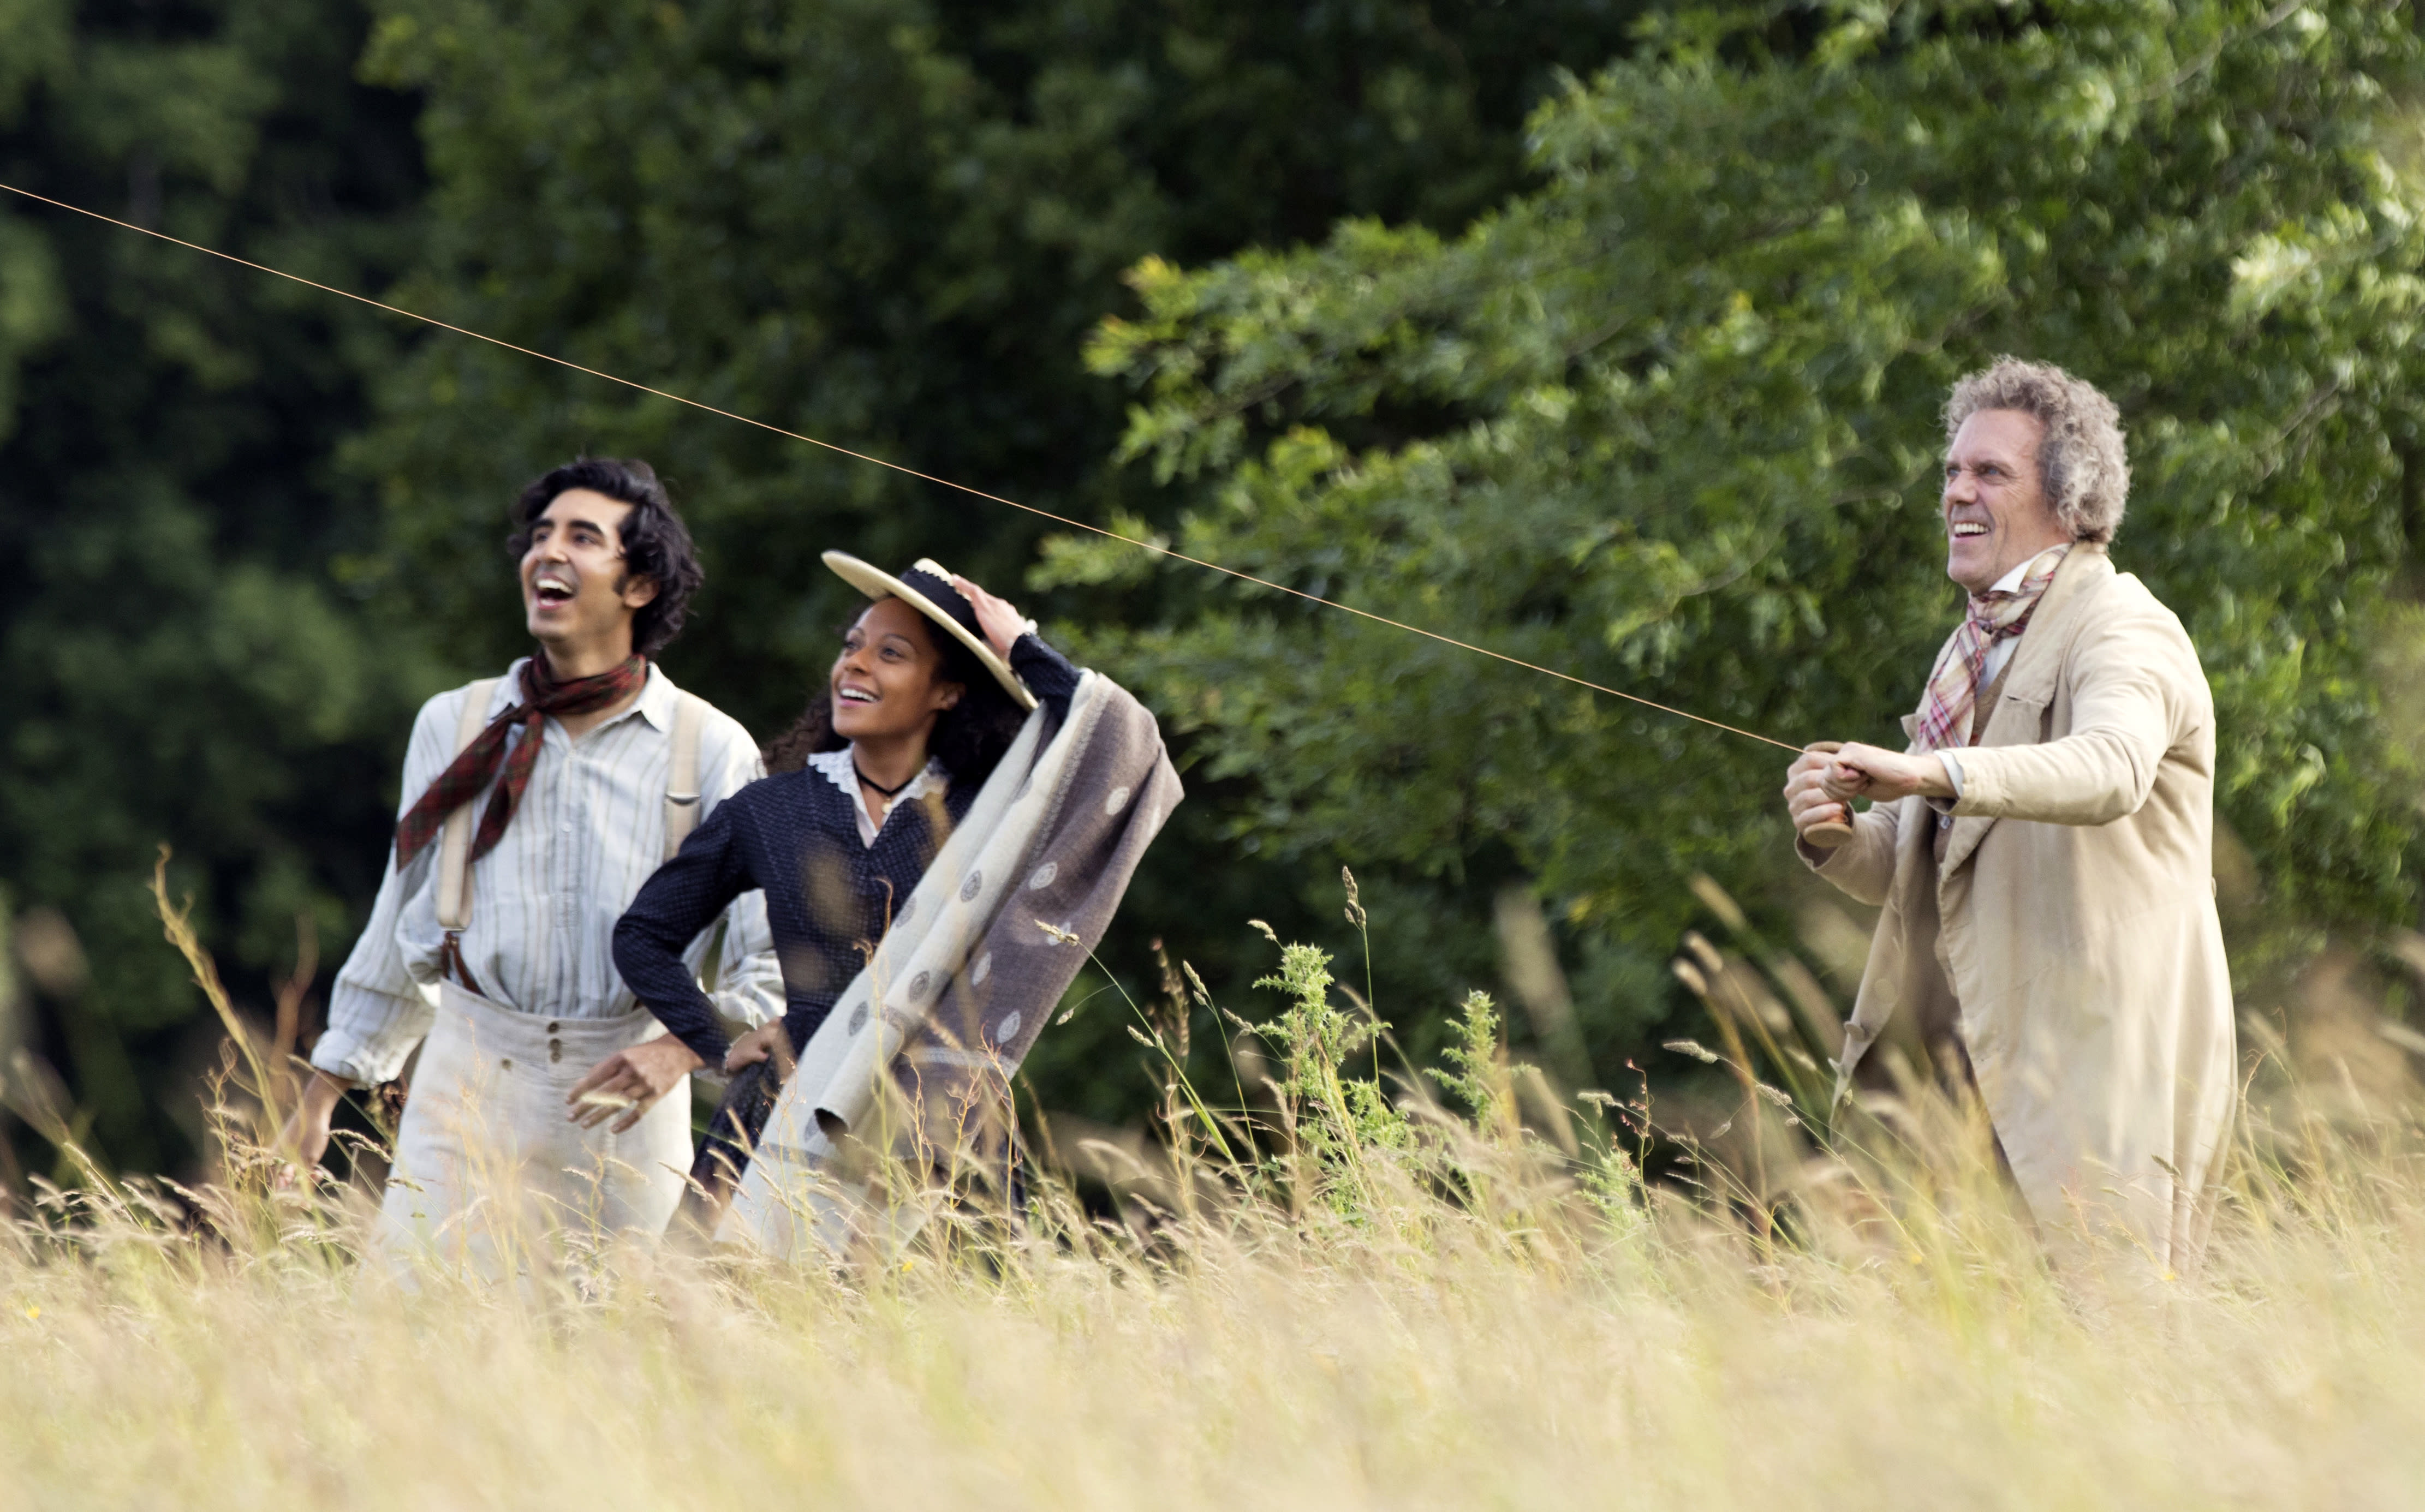 """This image released by Fox Searchlight Pictures shows Dev Patel, from left, Rosalind Eleazar and Hugh Laurie in a scene from the film """"The Personal History of David Copperfield."""" (Dean Rogers/Fox Searchlight Pictures via AP)"""